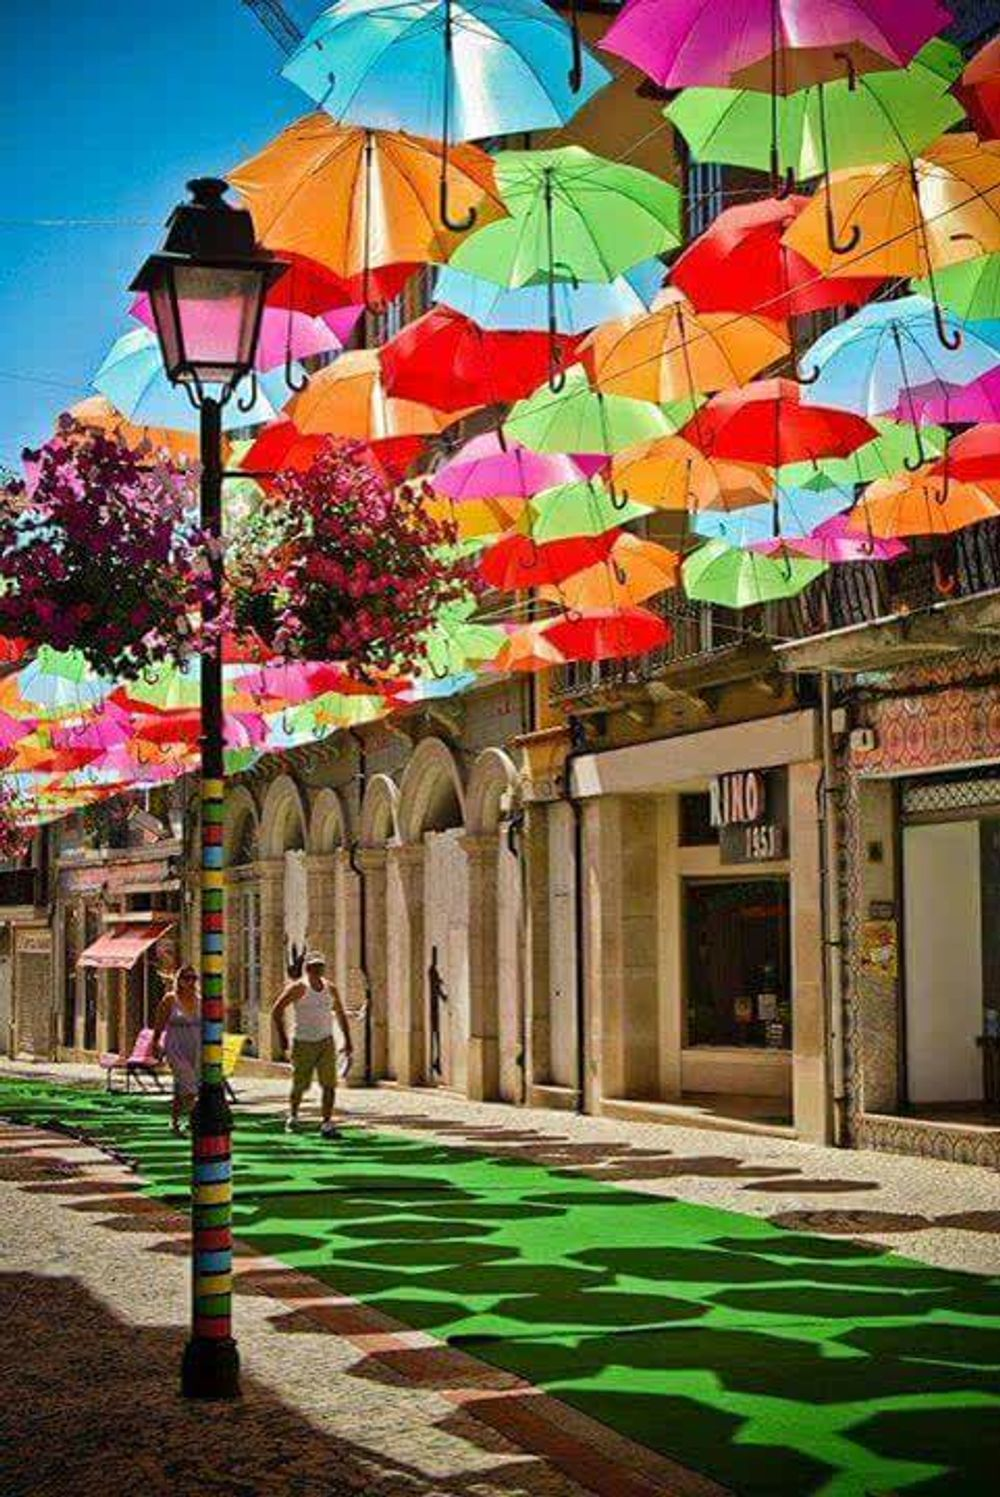 Umbrella street in Agueda, Portugal